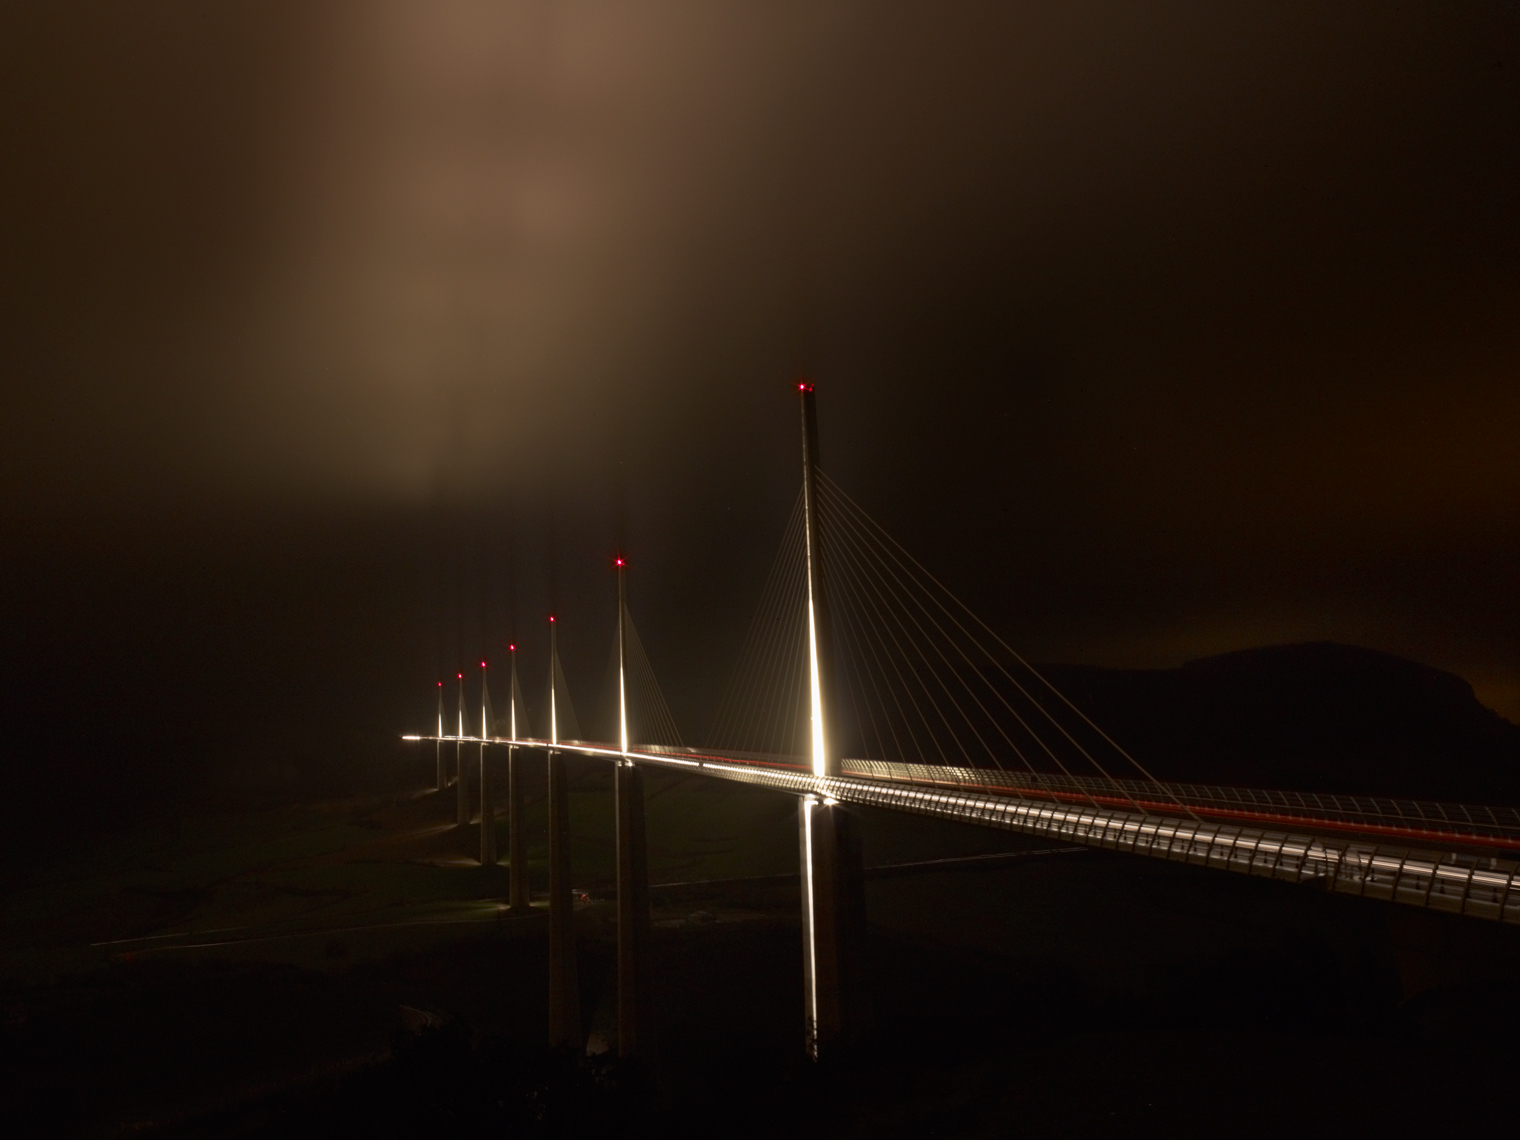 Jon Wyatt Photography - Millau Viaduct across the Tarn Valley at night in mist, France